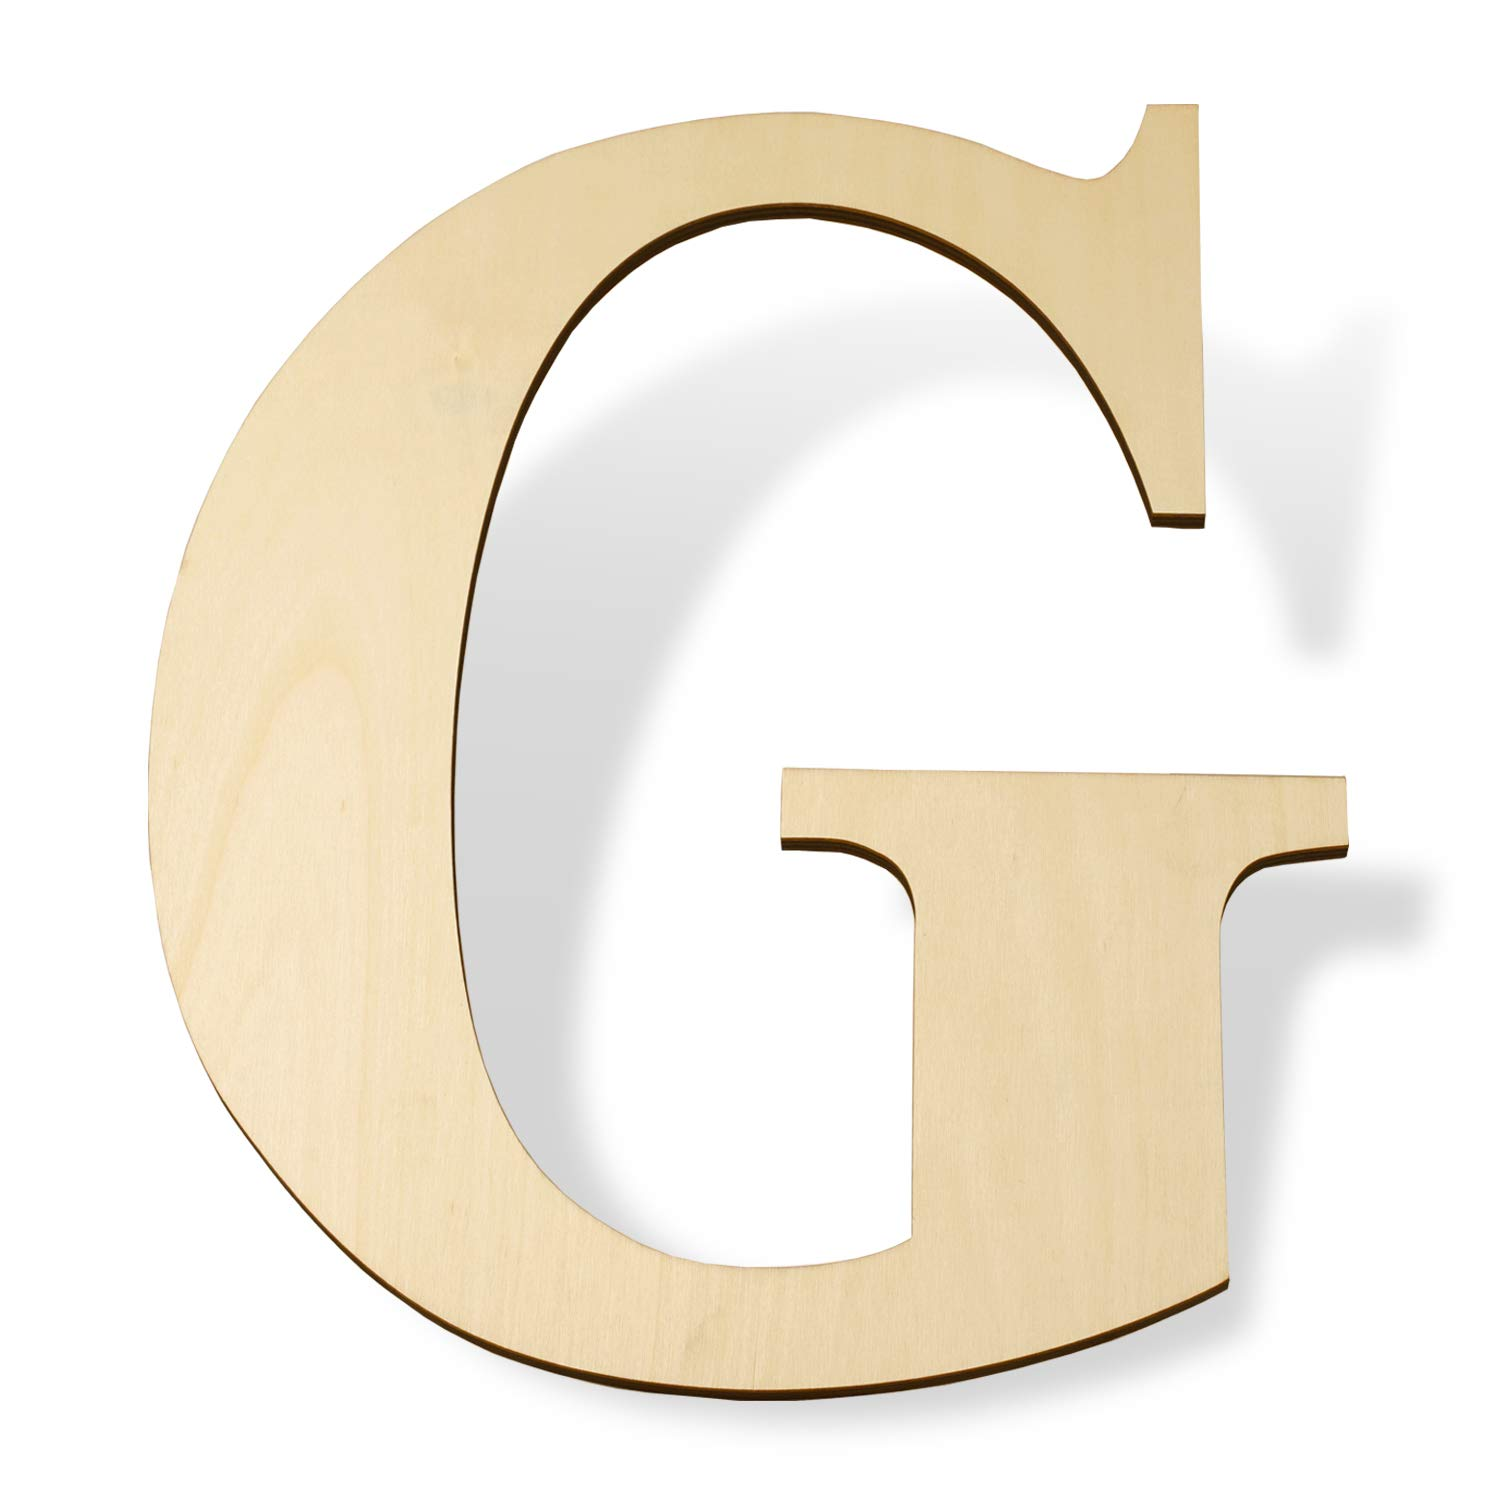 "12 inch Wooden Letters G - Blank Wood Board, Wood Letters for Walls Decor, Party, DIY Craft Projects (12"" - 1/4"" Thick, G)"